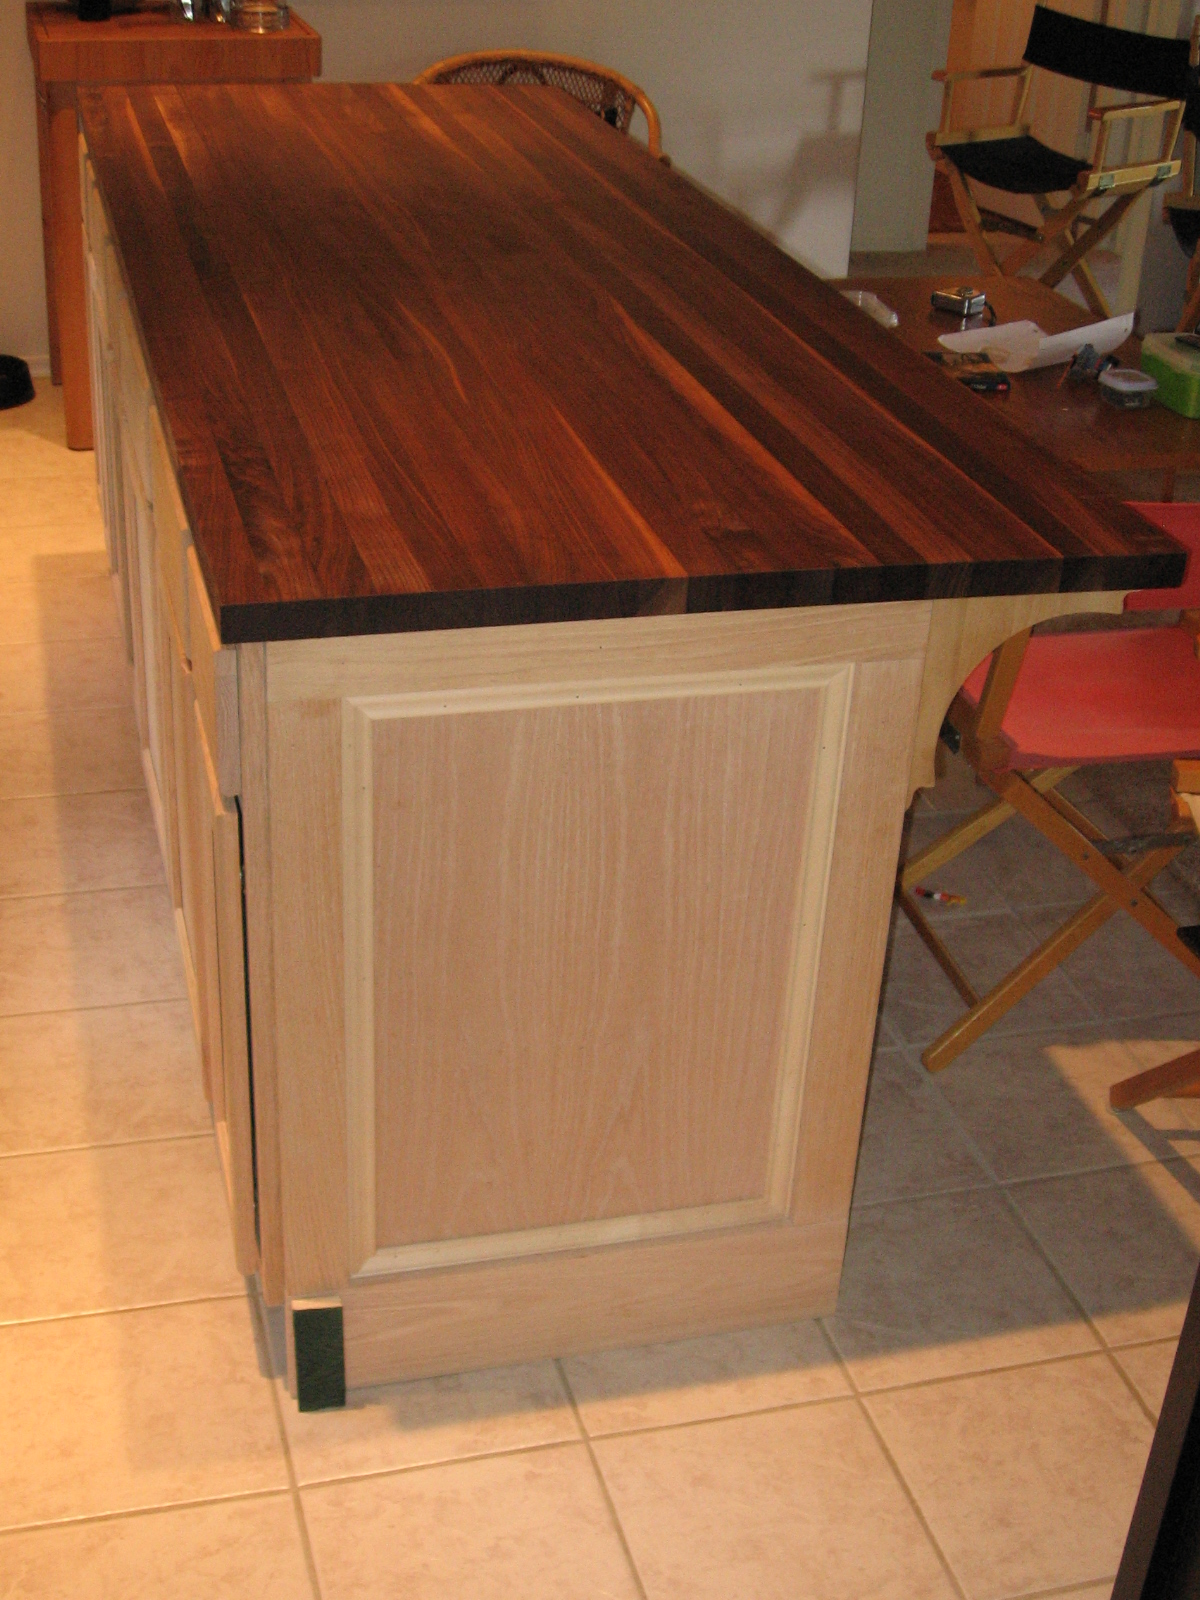 Dusty coyote diy kitchen island finishing up and looking at a green stain sample solutioingenieria Choice Image